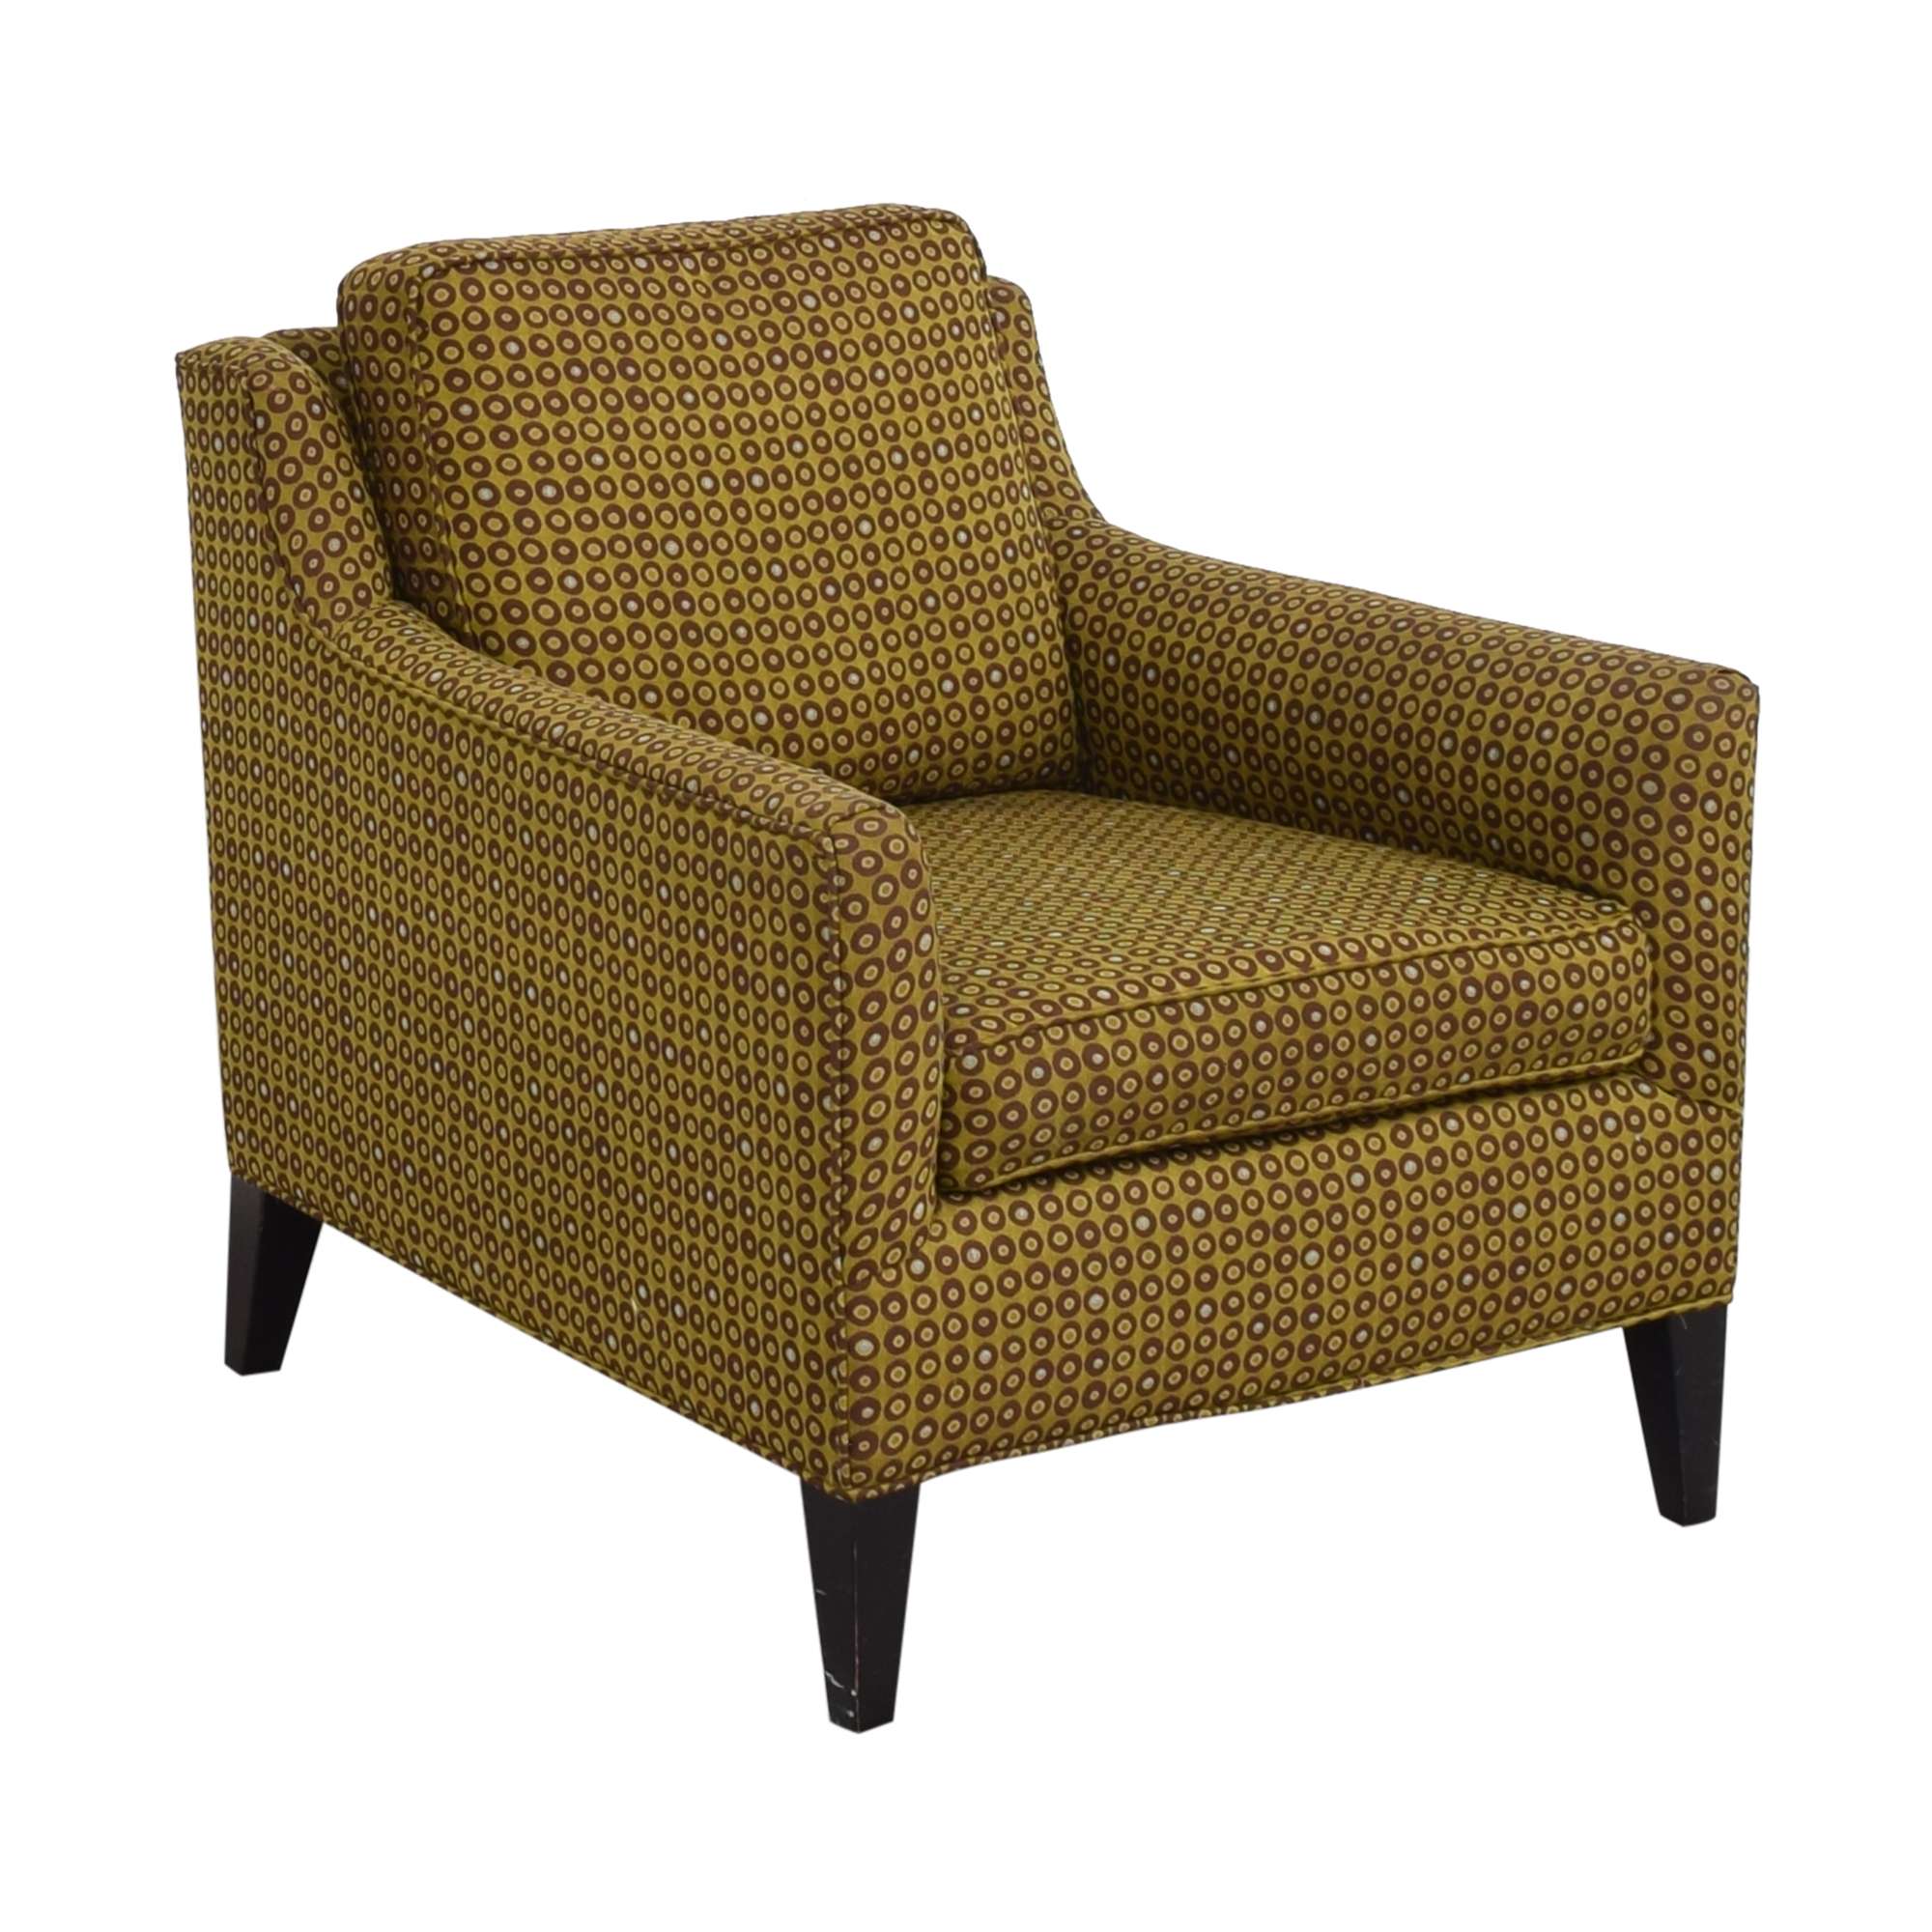 Mitchell Gold + Bob Williams Mitchell Gold + Bob Williams Club Chair ma